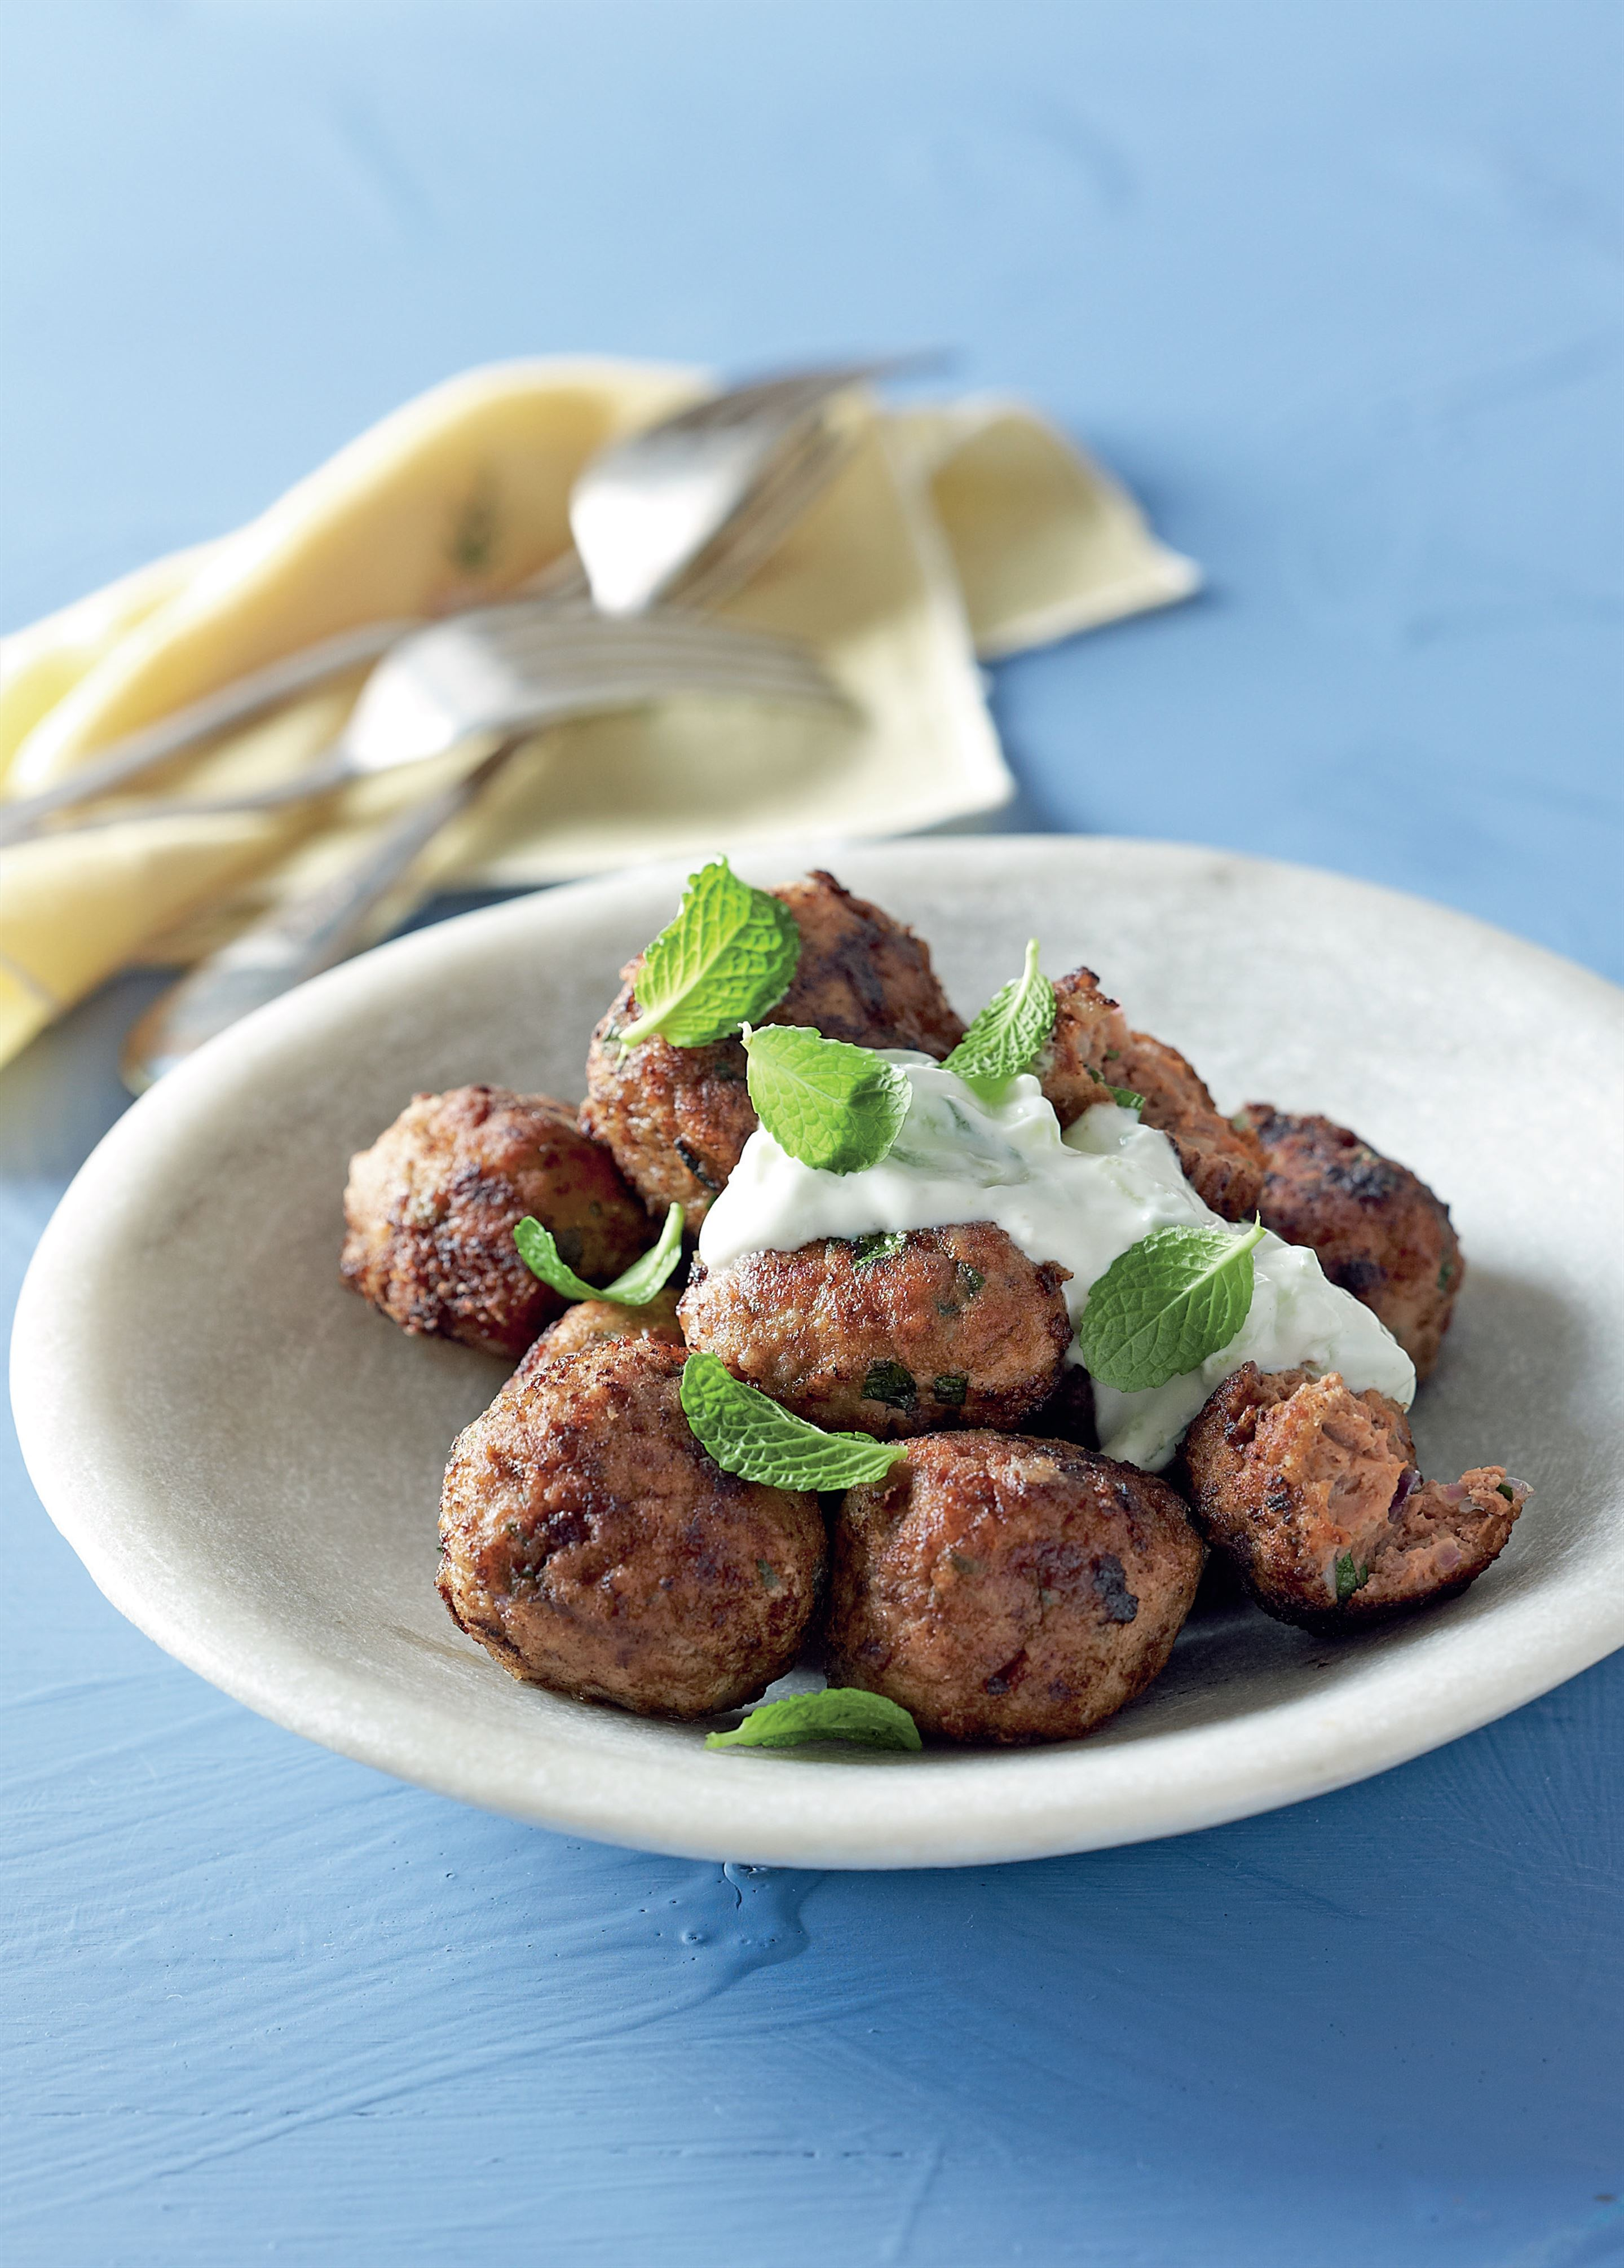 Lamb kofta with tzatziki